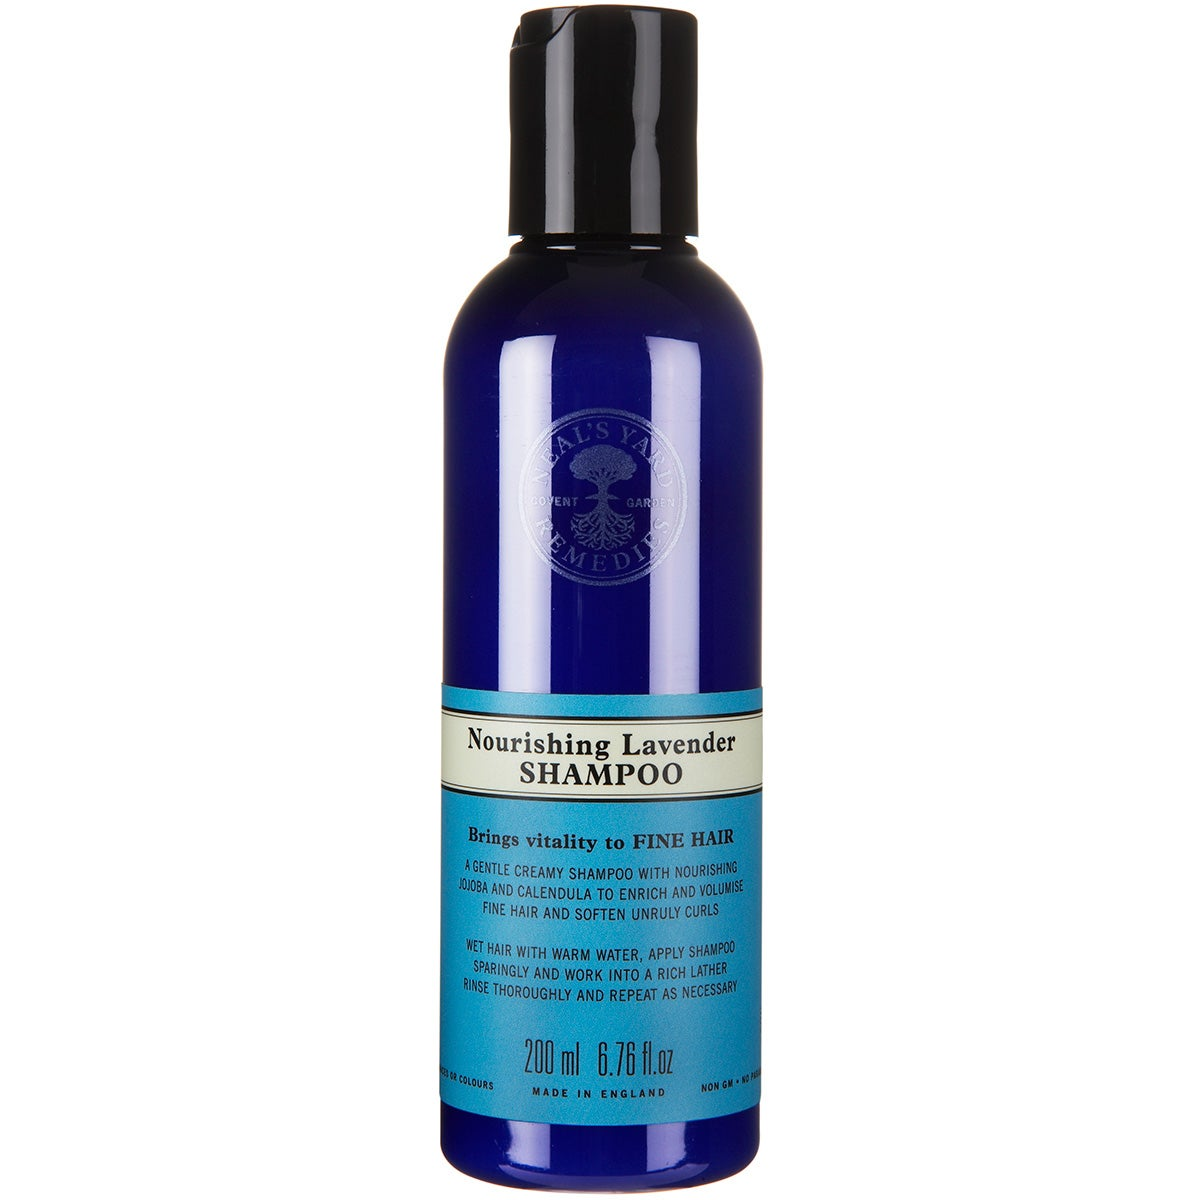 Neal's Yard Remedies Nourishing Lavender Shampoo